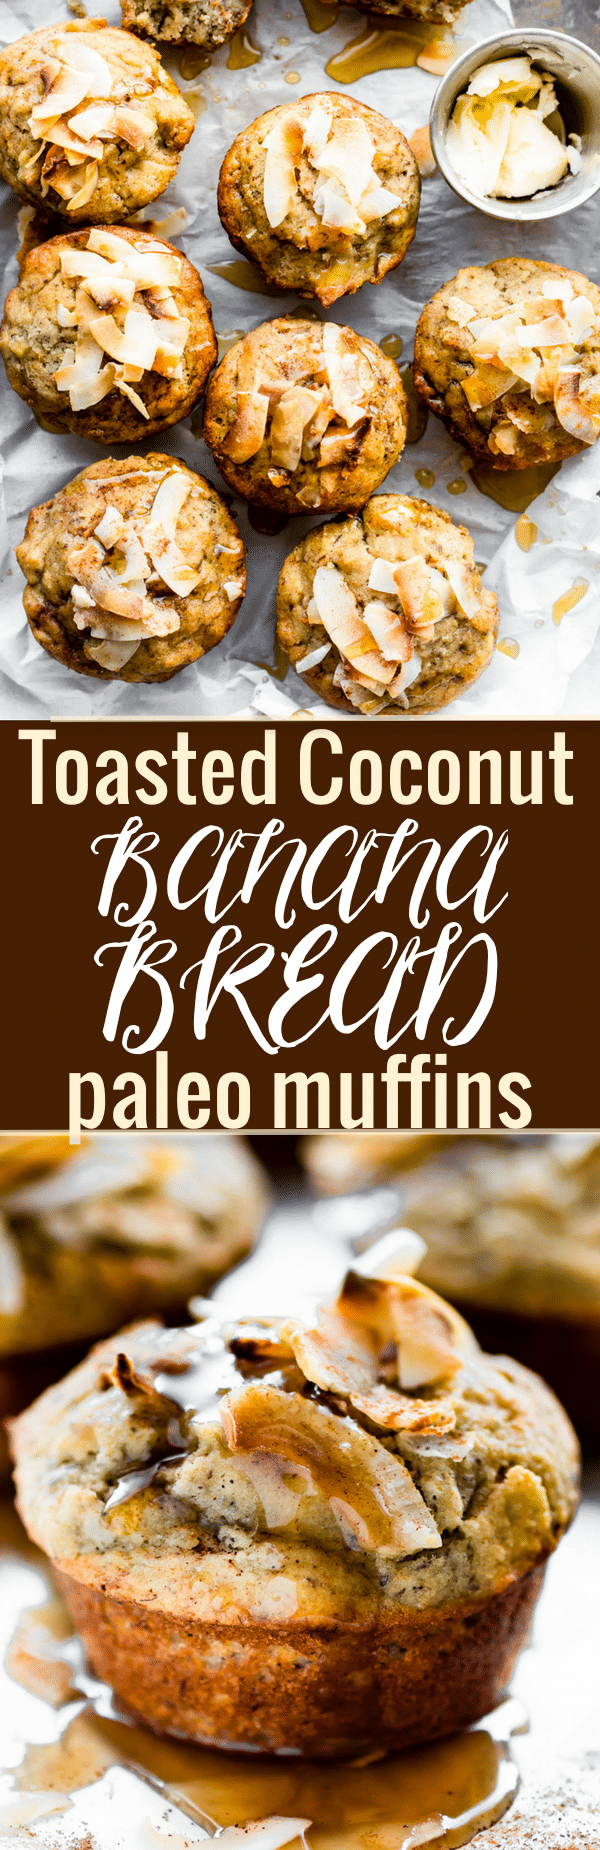 Lightly Sweetened TOASTED COCONUT PALEO BANANA BREAD MUFFINS These Banana Muffins are quick to make and delicious! Refinedsugar free, soft, fluffy, and addicting. www.cottercrunch.com